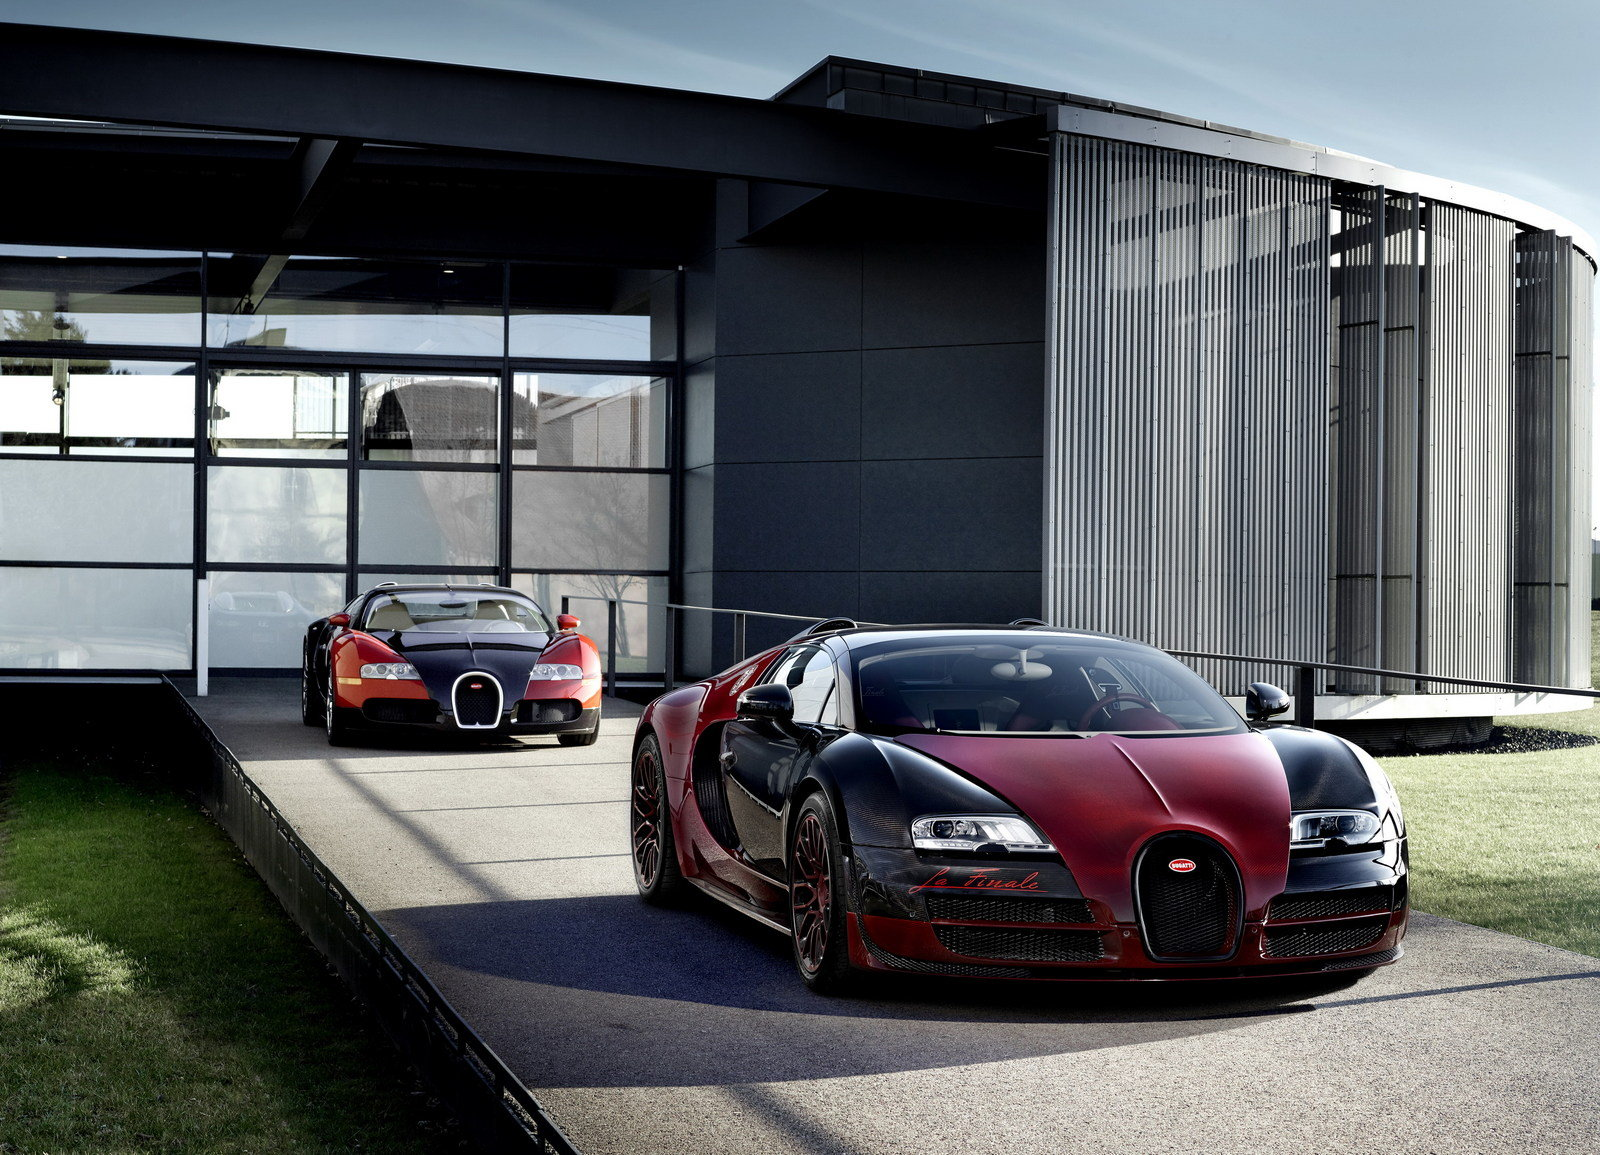 2019 Bugatti Veyron Grand Sport photo - 1